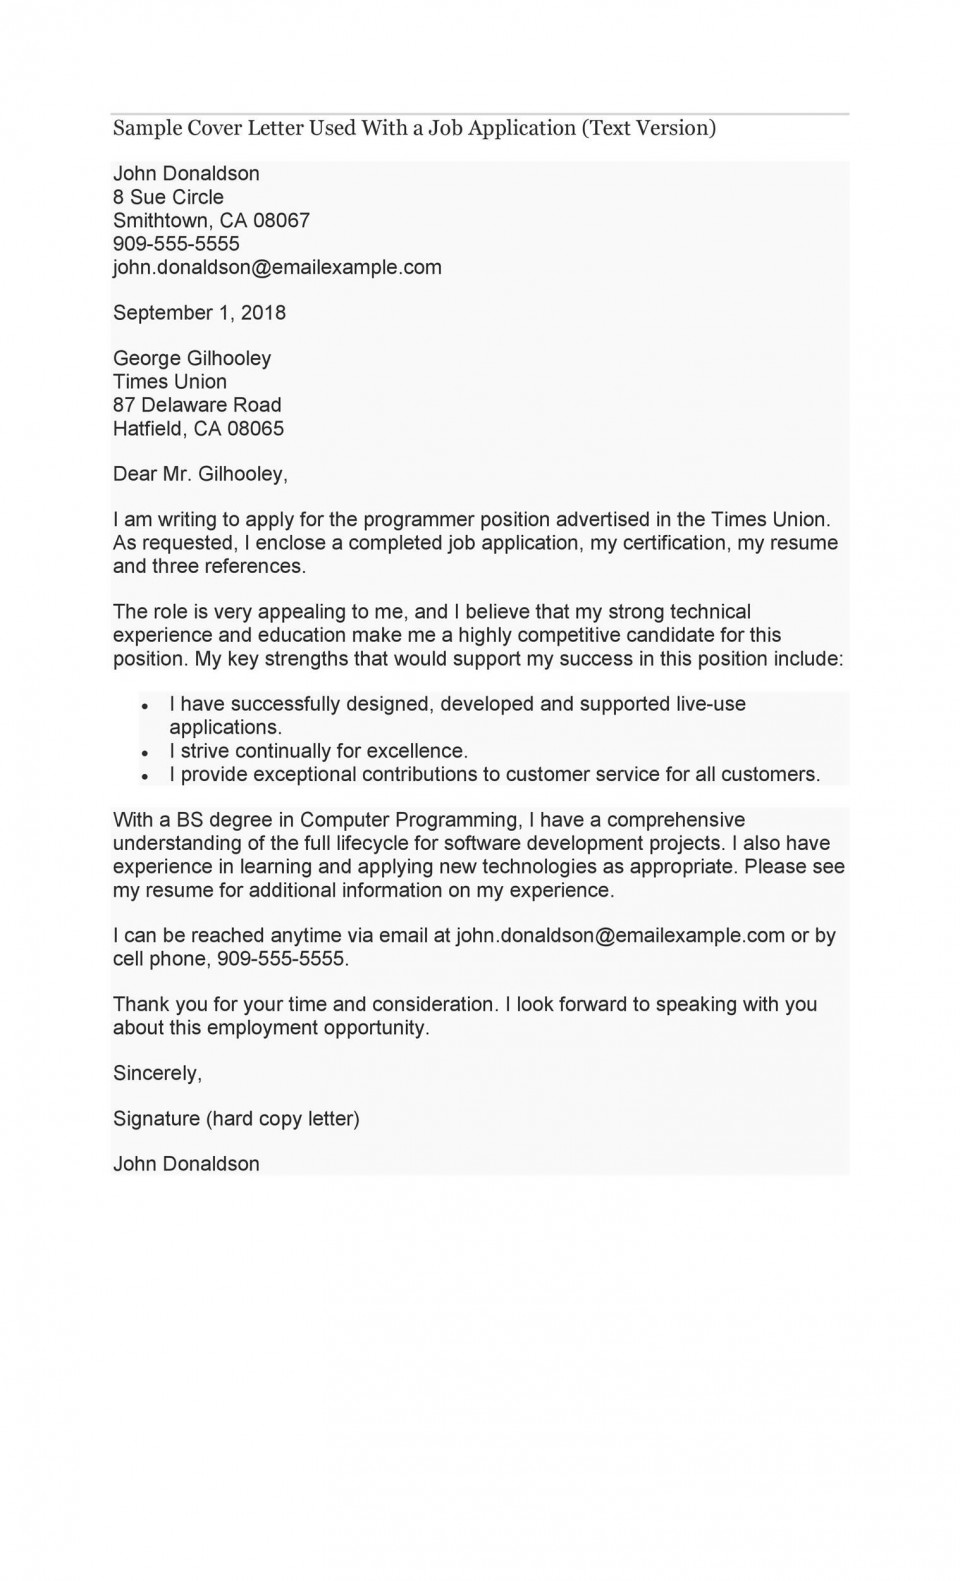 007 Stupendou Cover Letter Writing Sample Idea  Example For Content Job Resume960